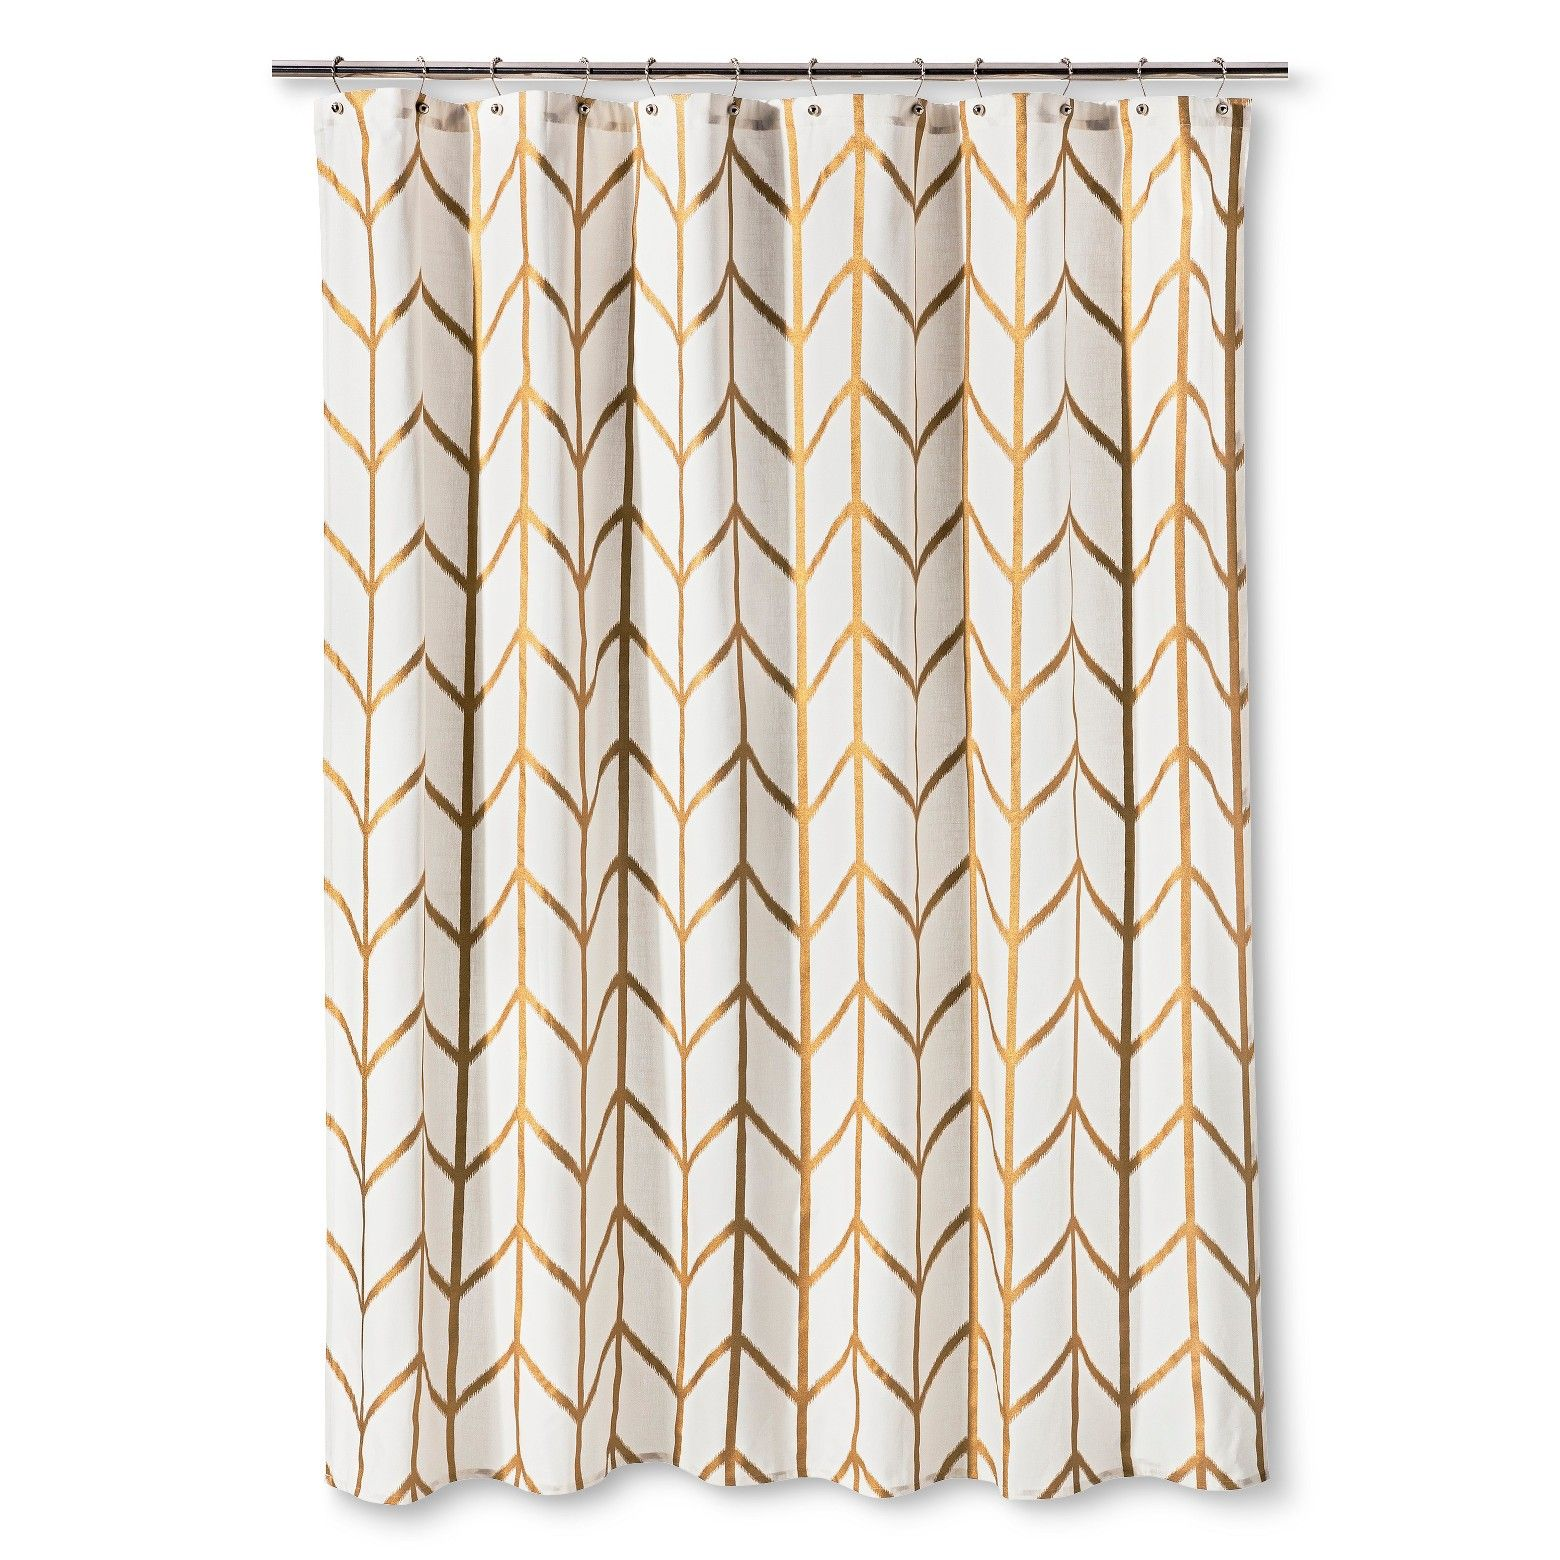 The Gold Ikat Shower Curtain From Threshold Gives Your Bathroom A